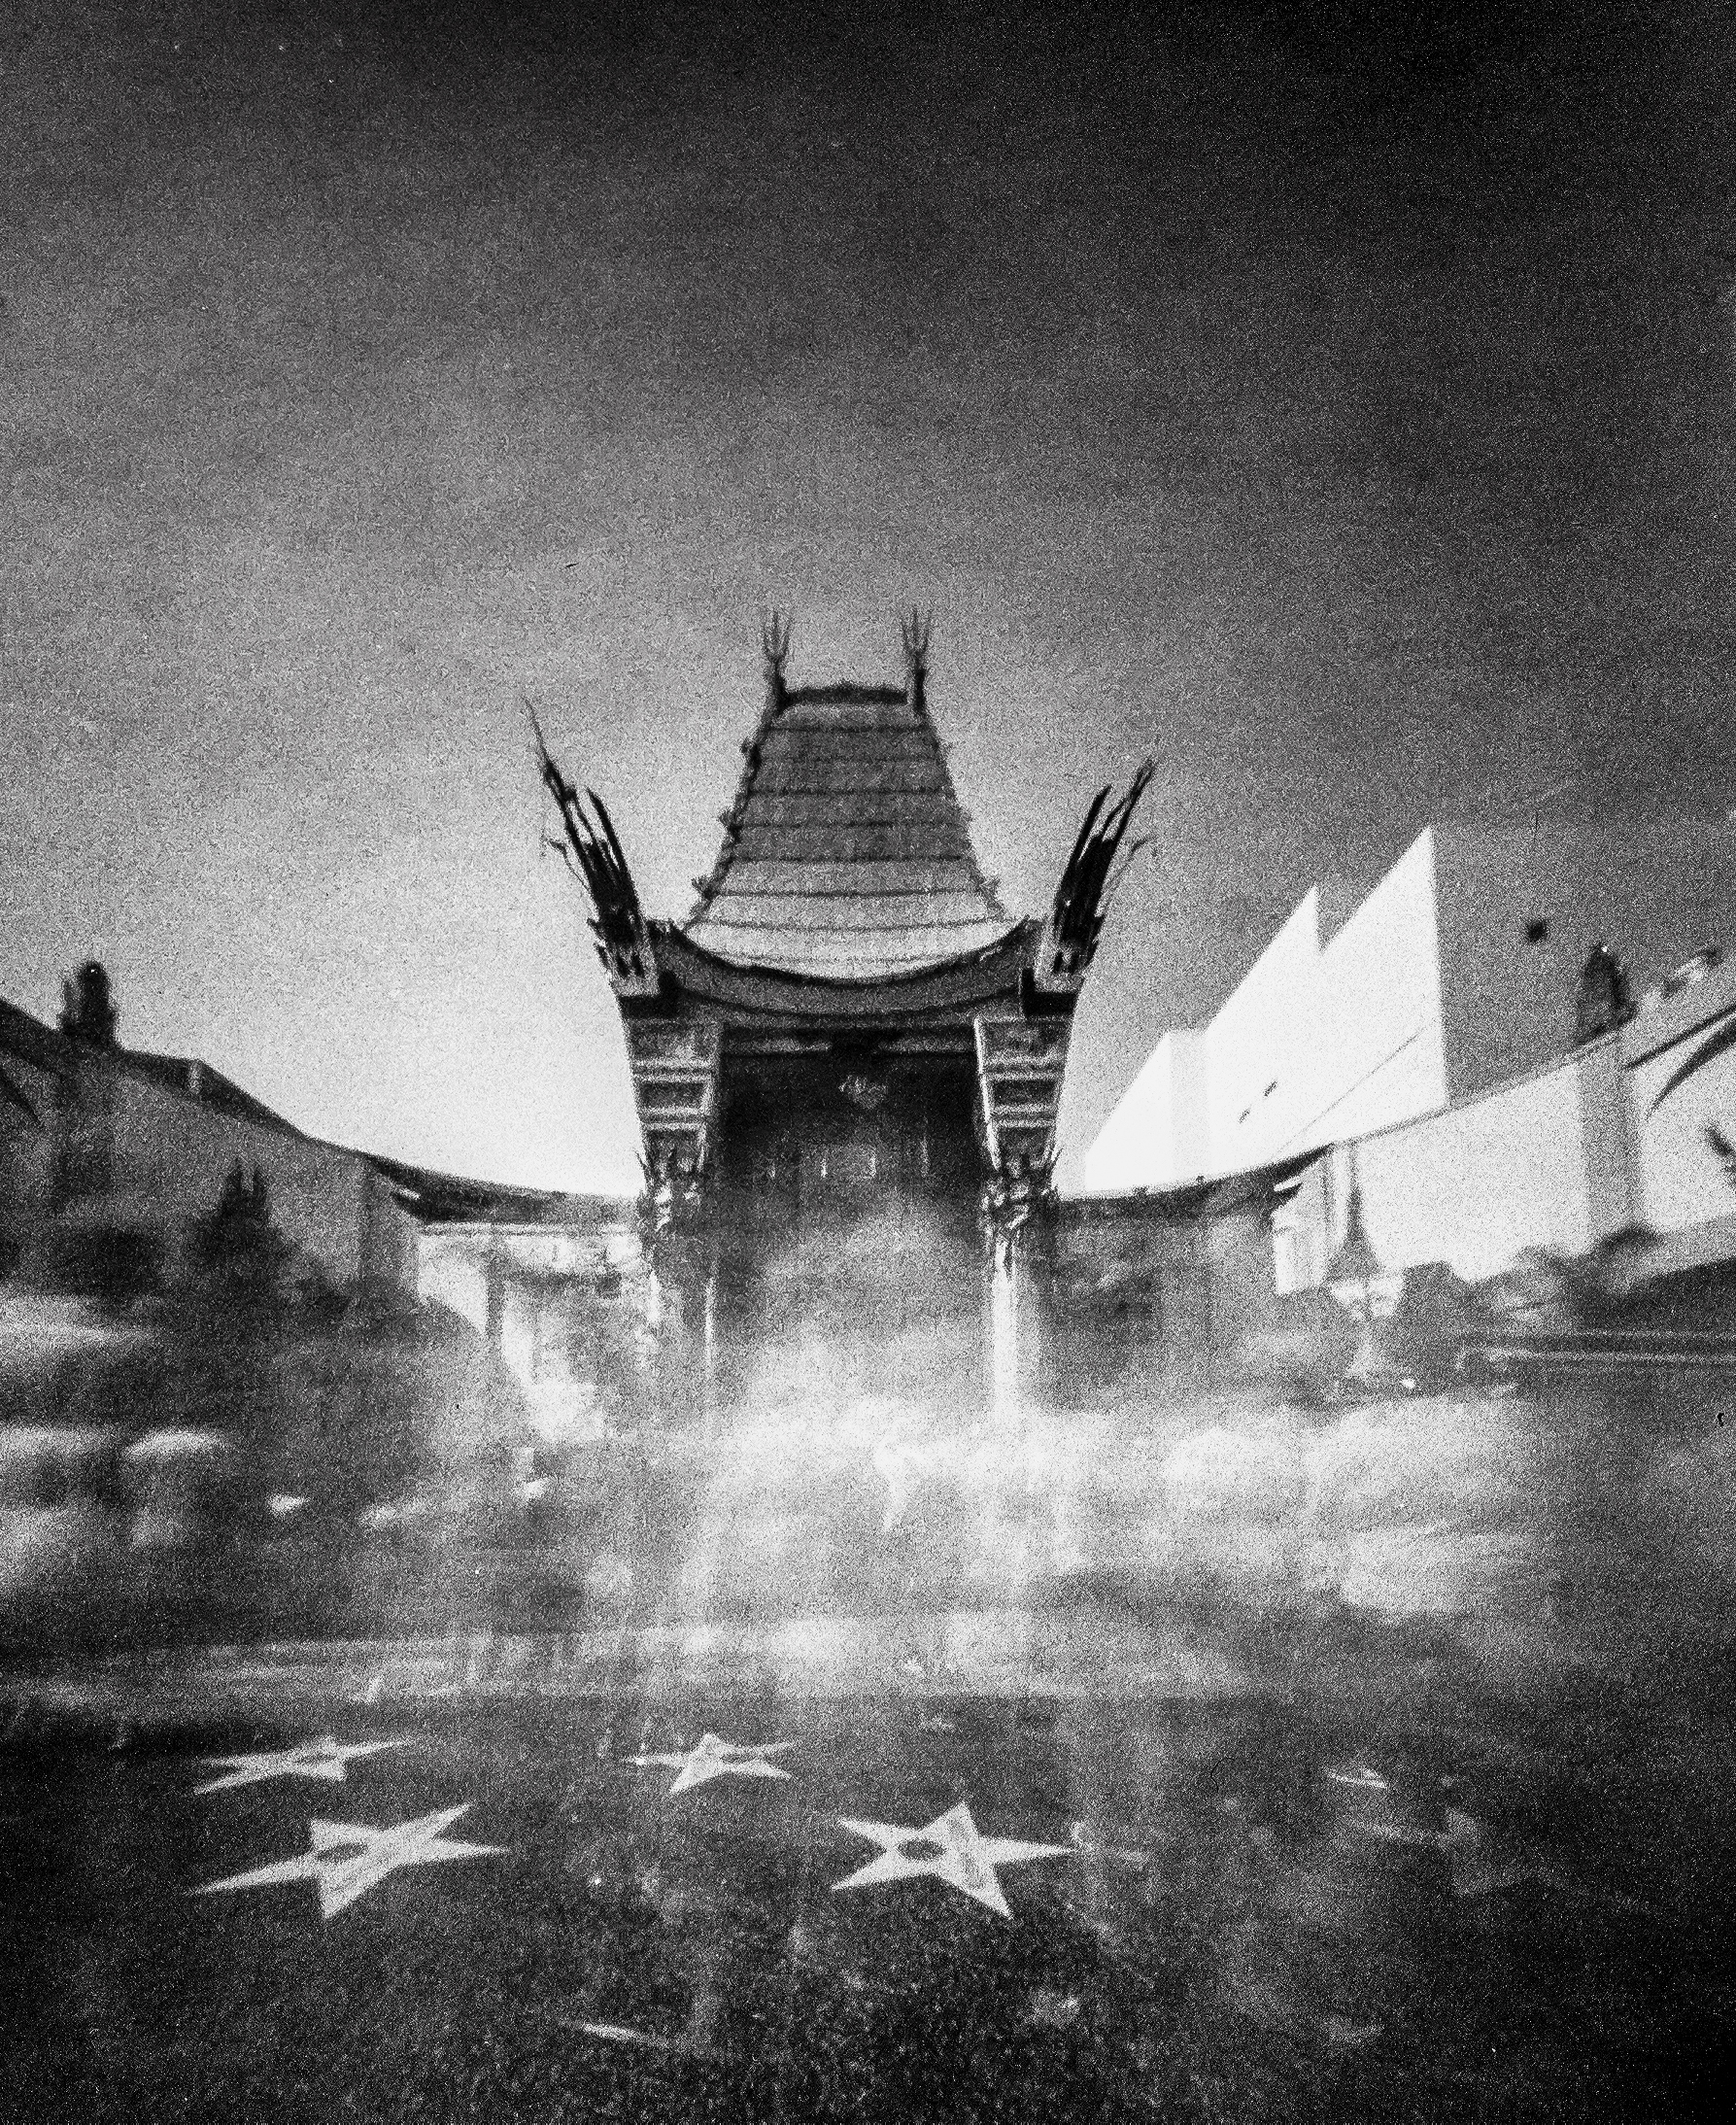 Tourist Ghosts Of Graumann's Chinese Theatre   Reality So Subtle 4x5 Pinhole   Kodak Royal X-Pan, expired 1961 at ISO 6   James Thorpe